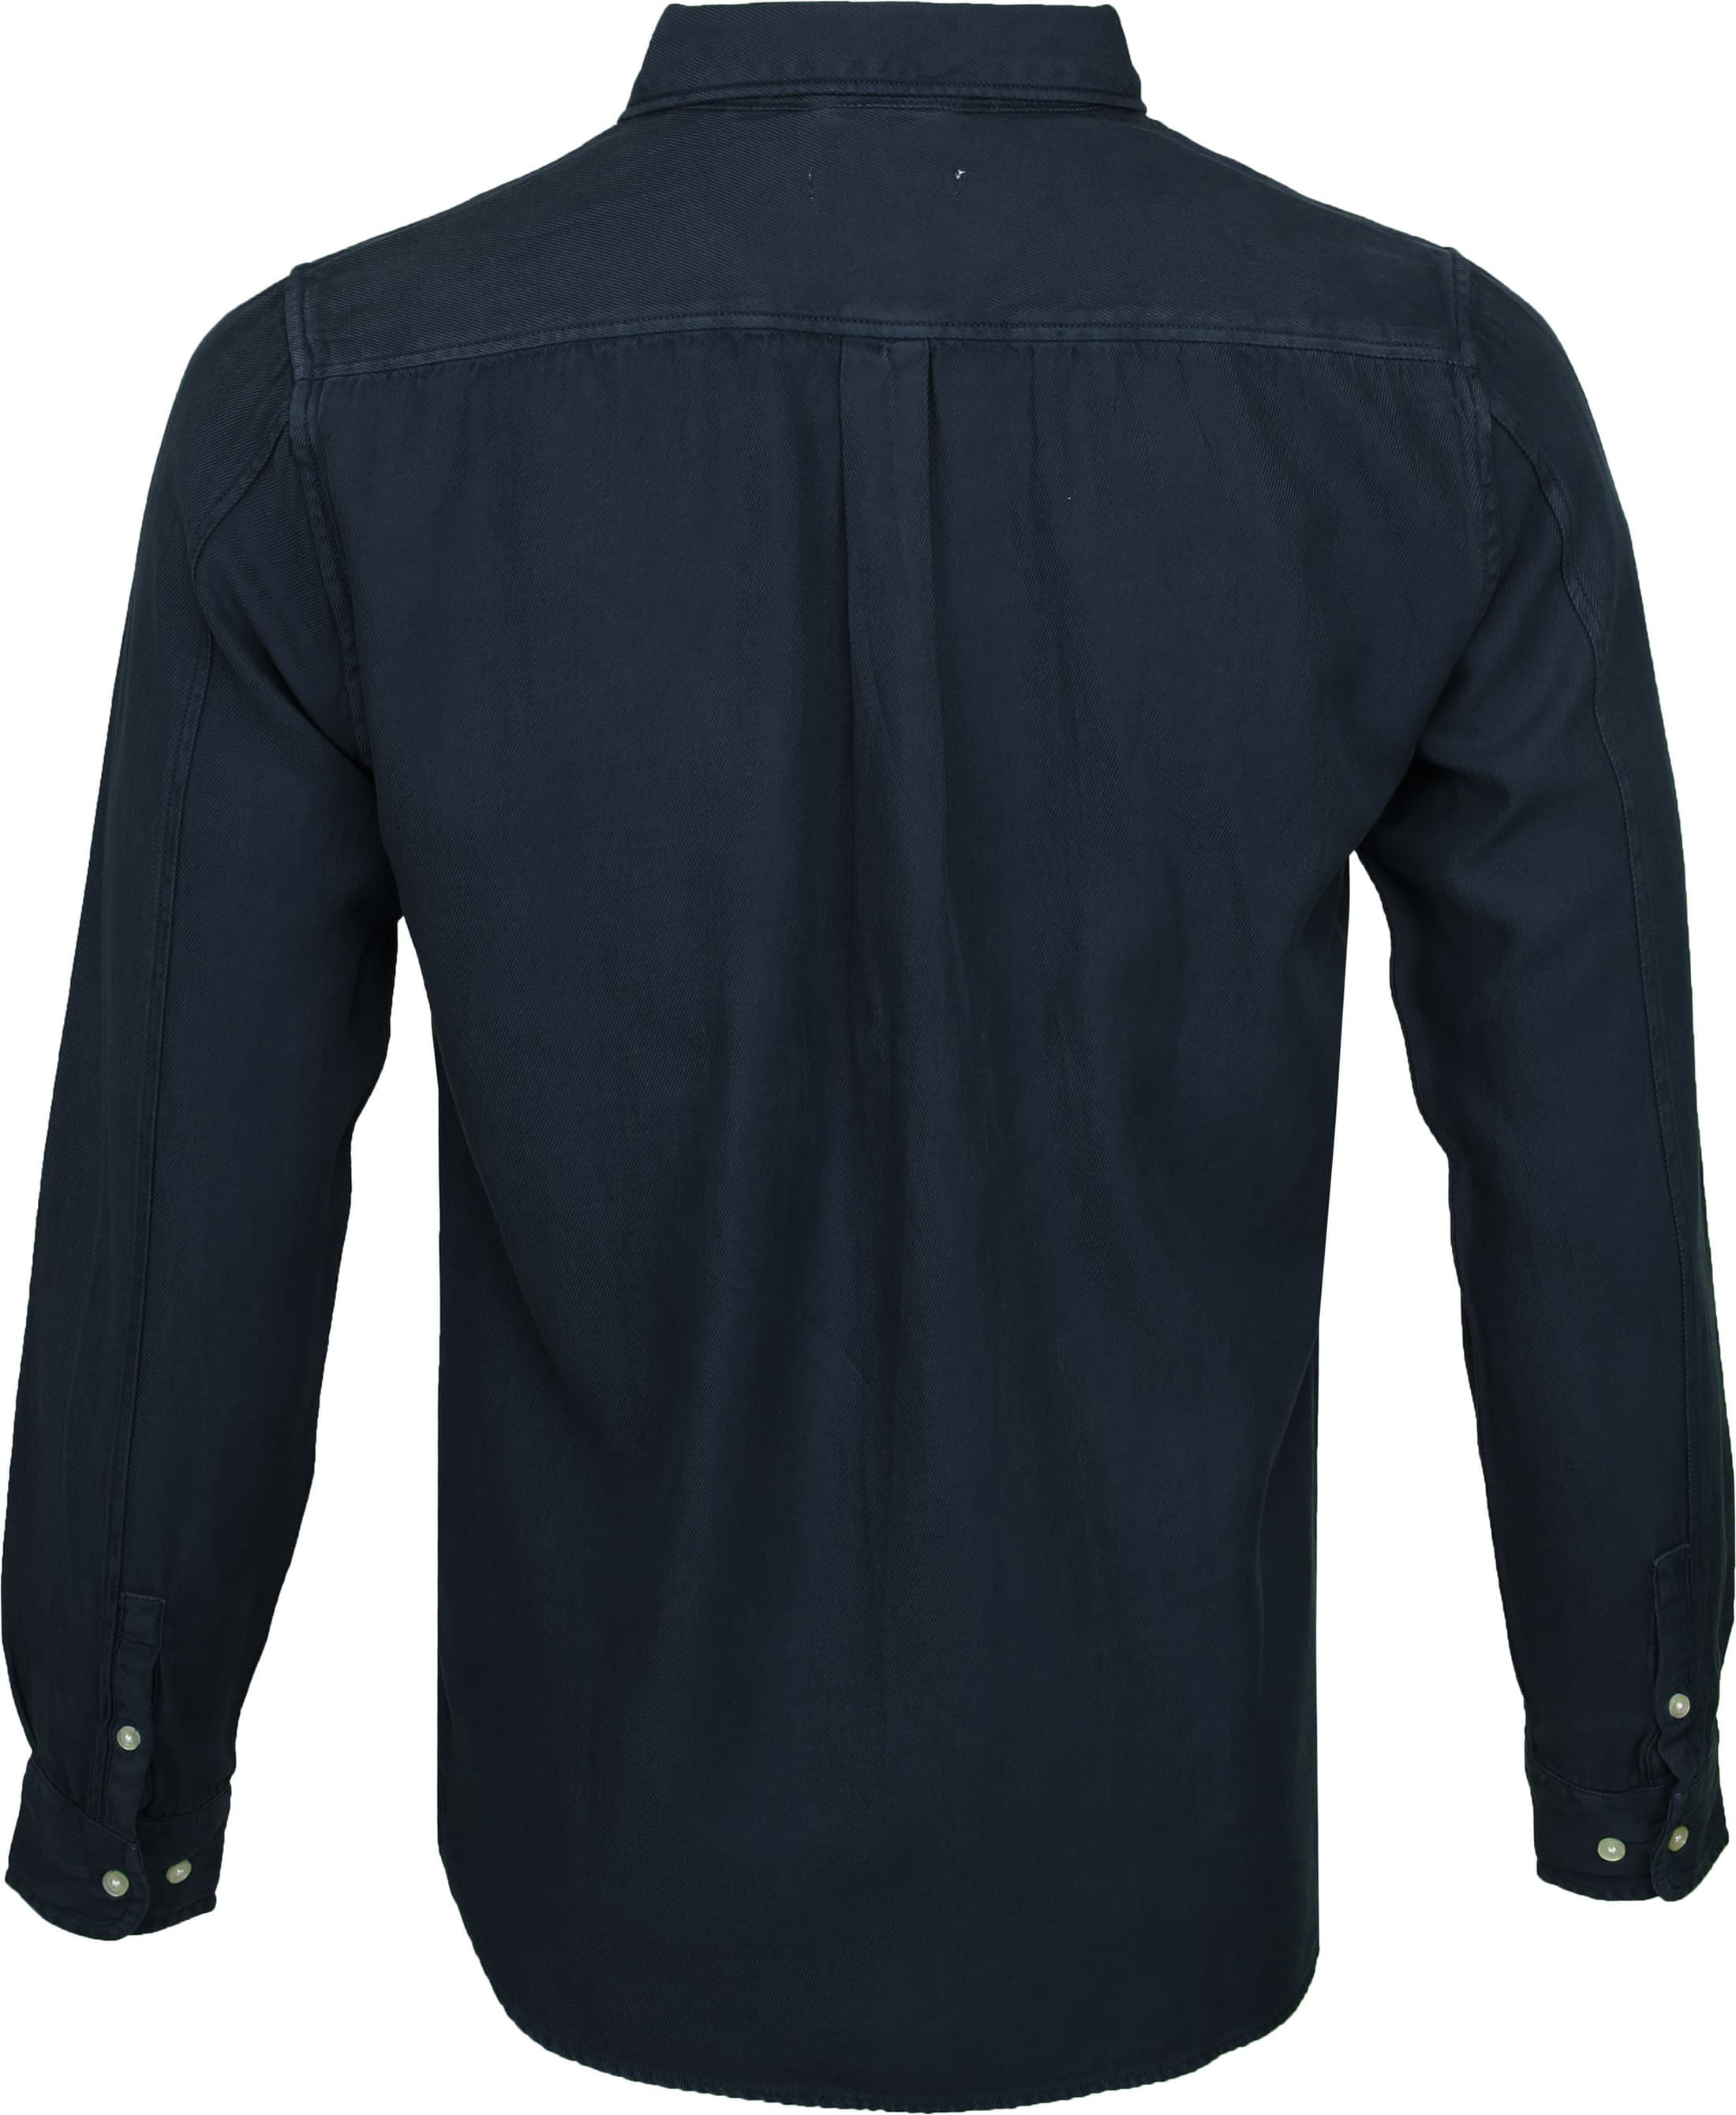 KnowledgeCotton Apparel Shirt Twill Navy photo 3